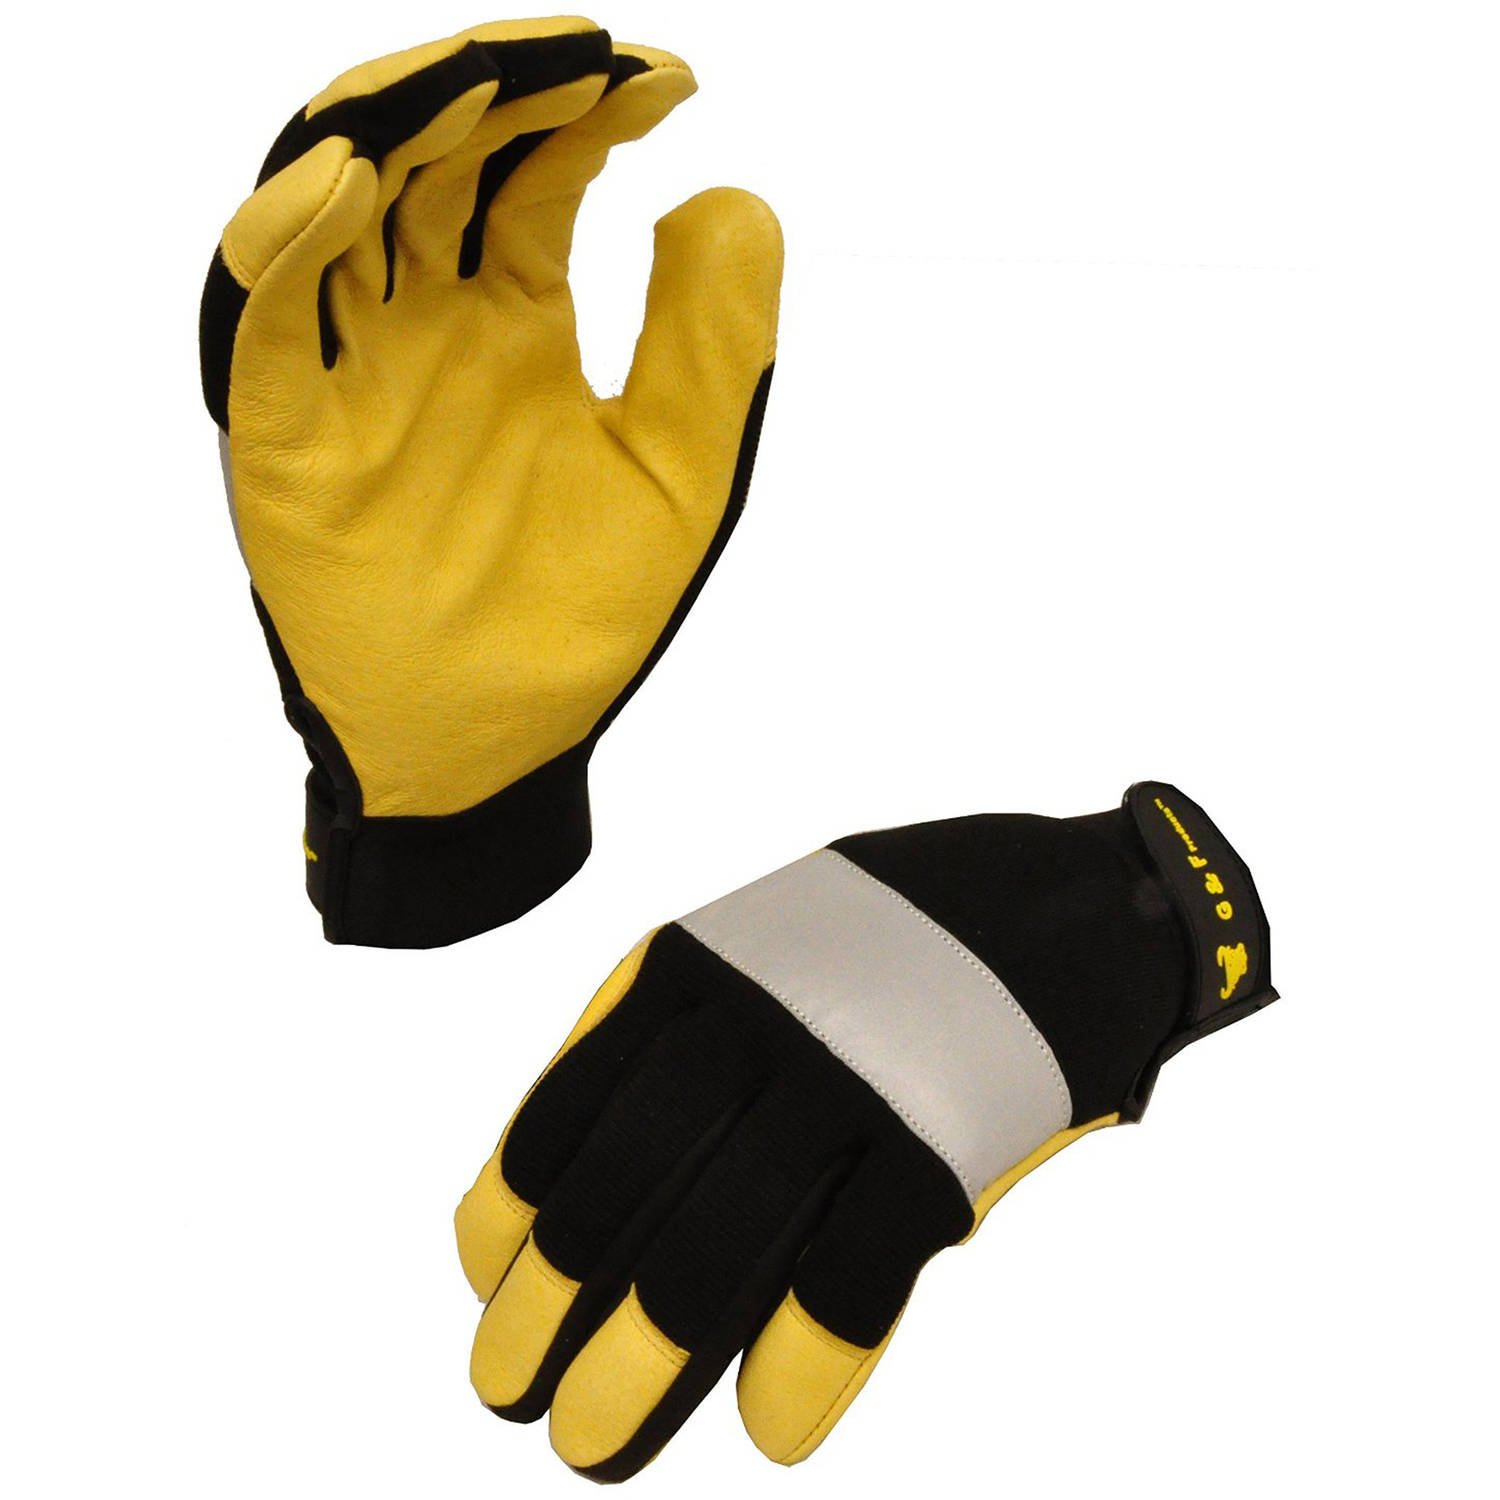 G & F Dark Owl High-Visibility Reflective Performance Gloves Size, Large